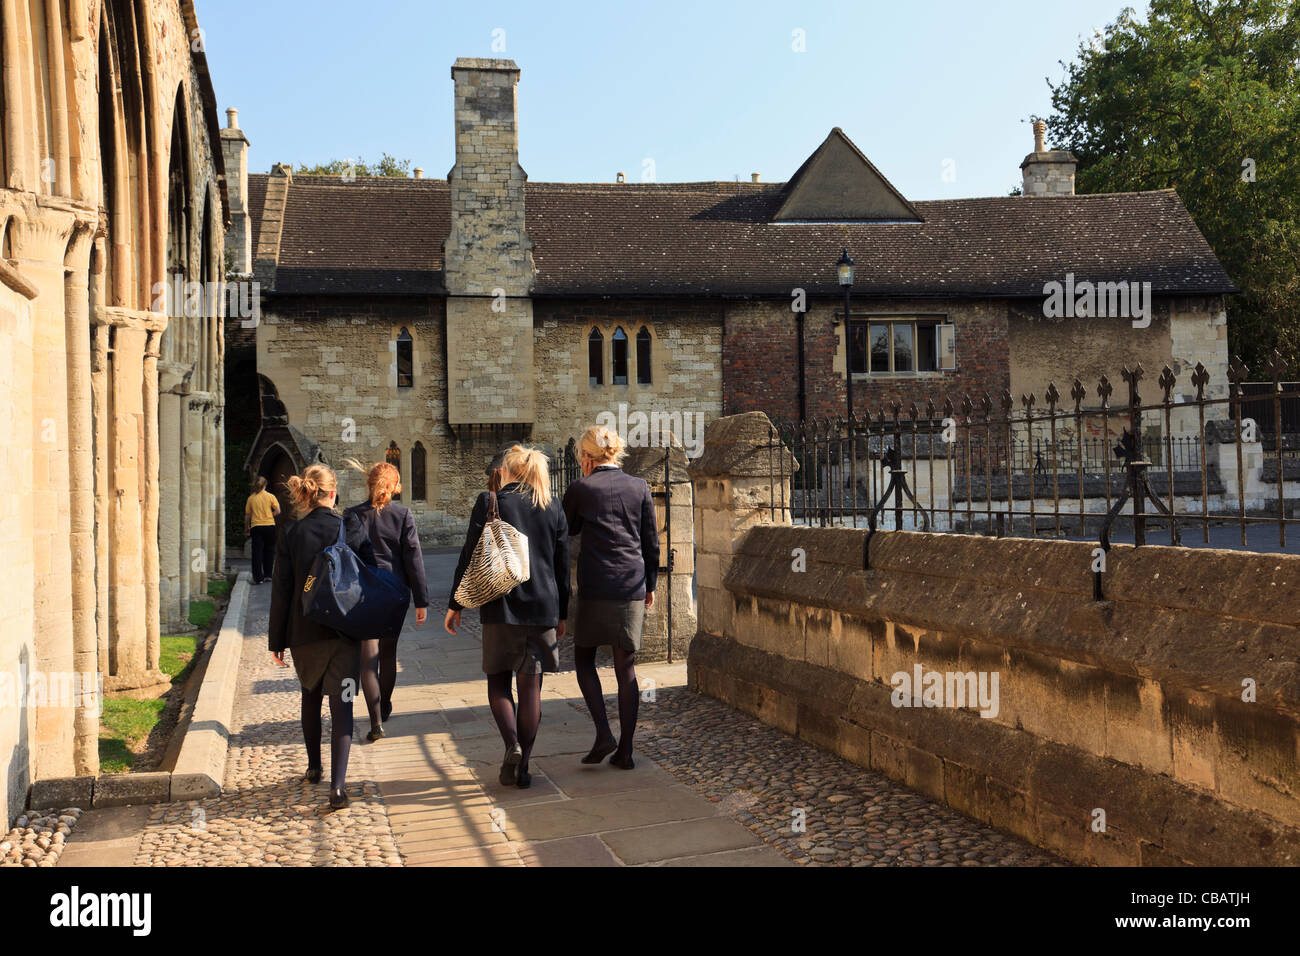 Pupils from The King's School by Infirmary arches and 14th century Dulverton House 6th form centre in Gloucester - Stock Image